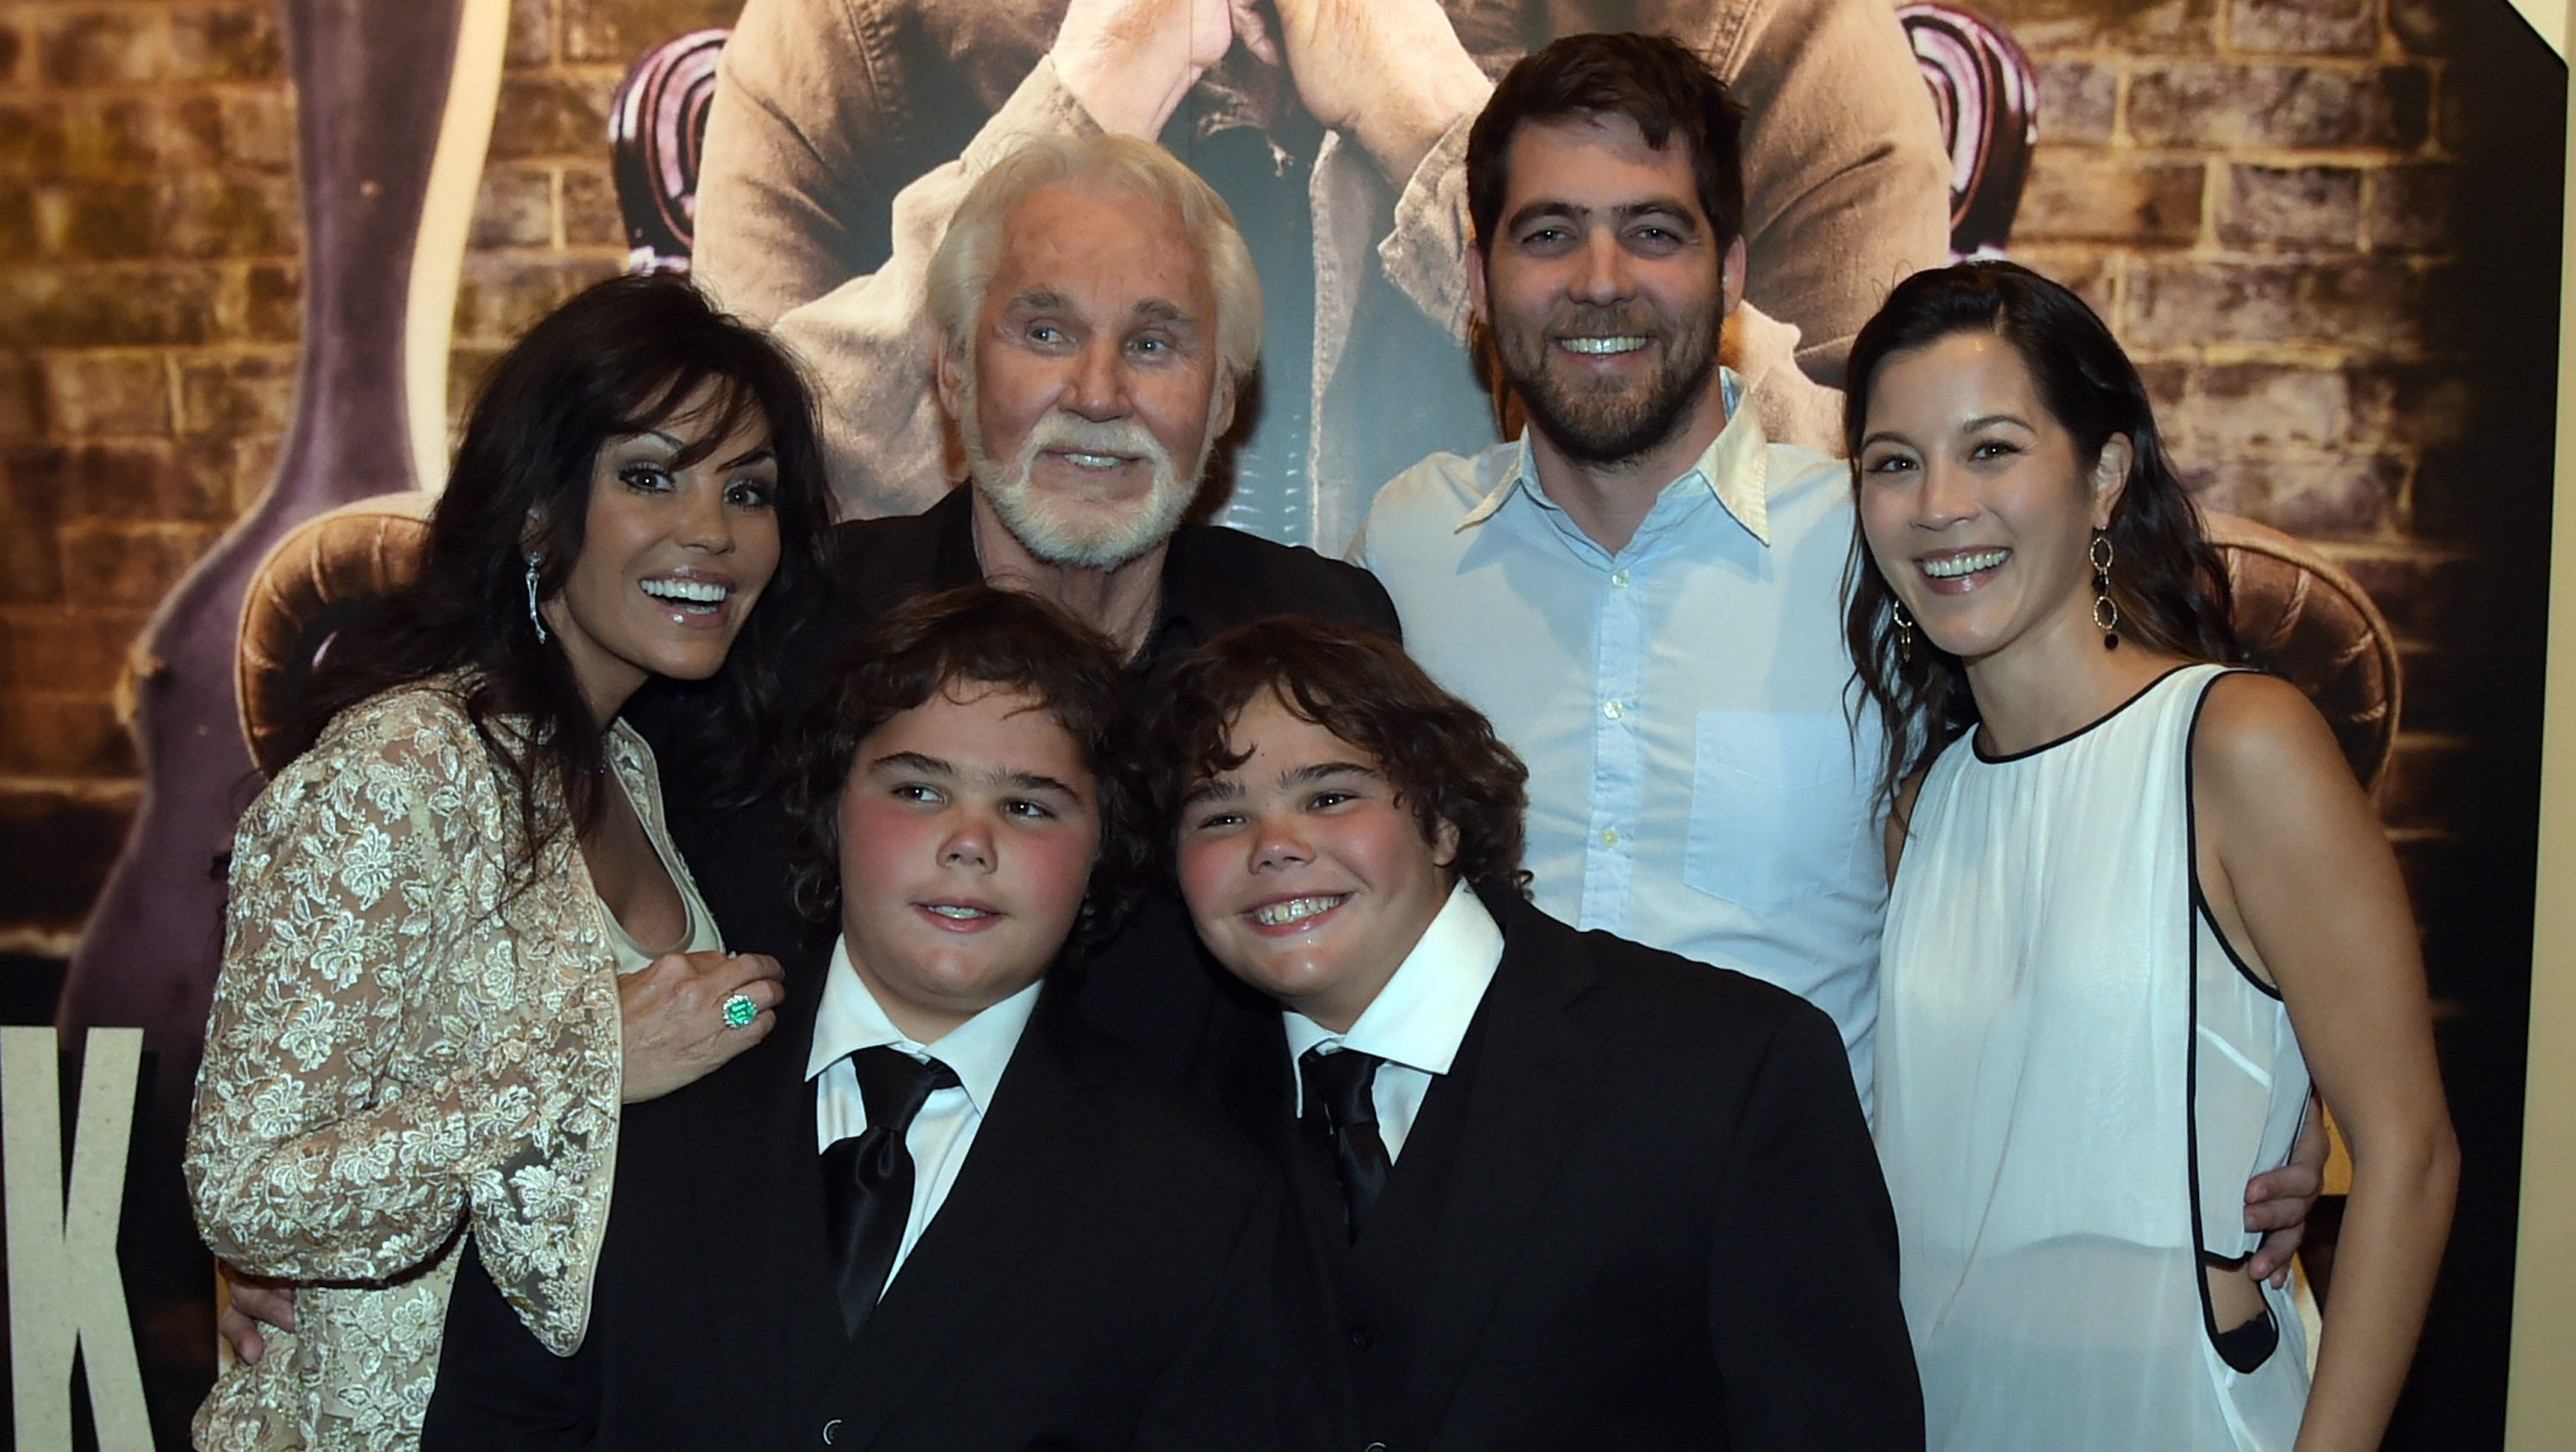 Kenny Rogers Family 5 Fast Facts You Need To Know Heavy Com